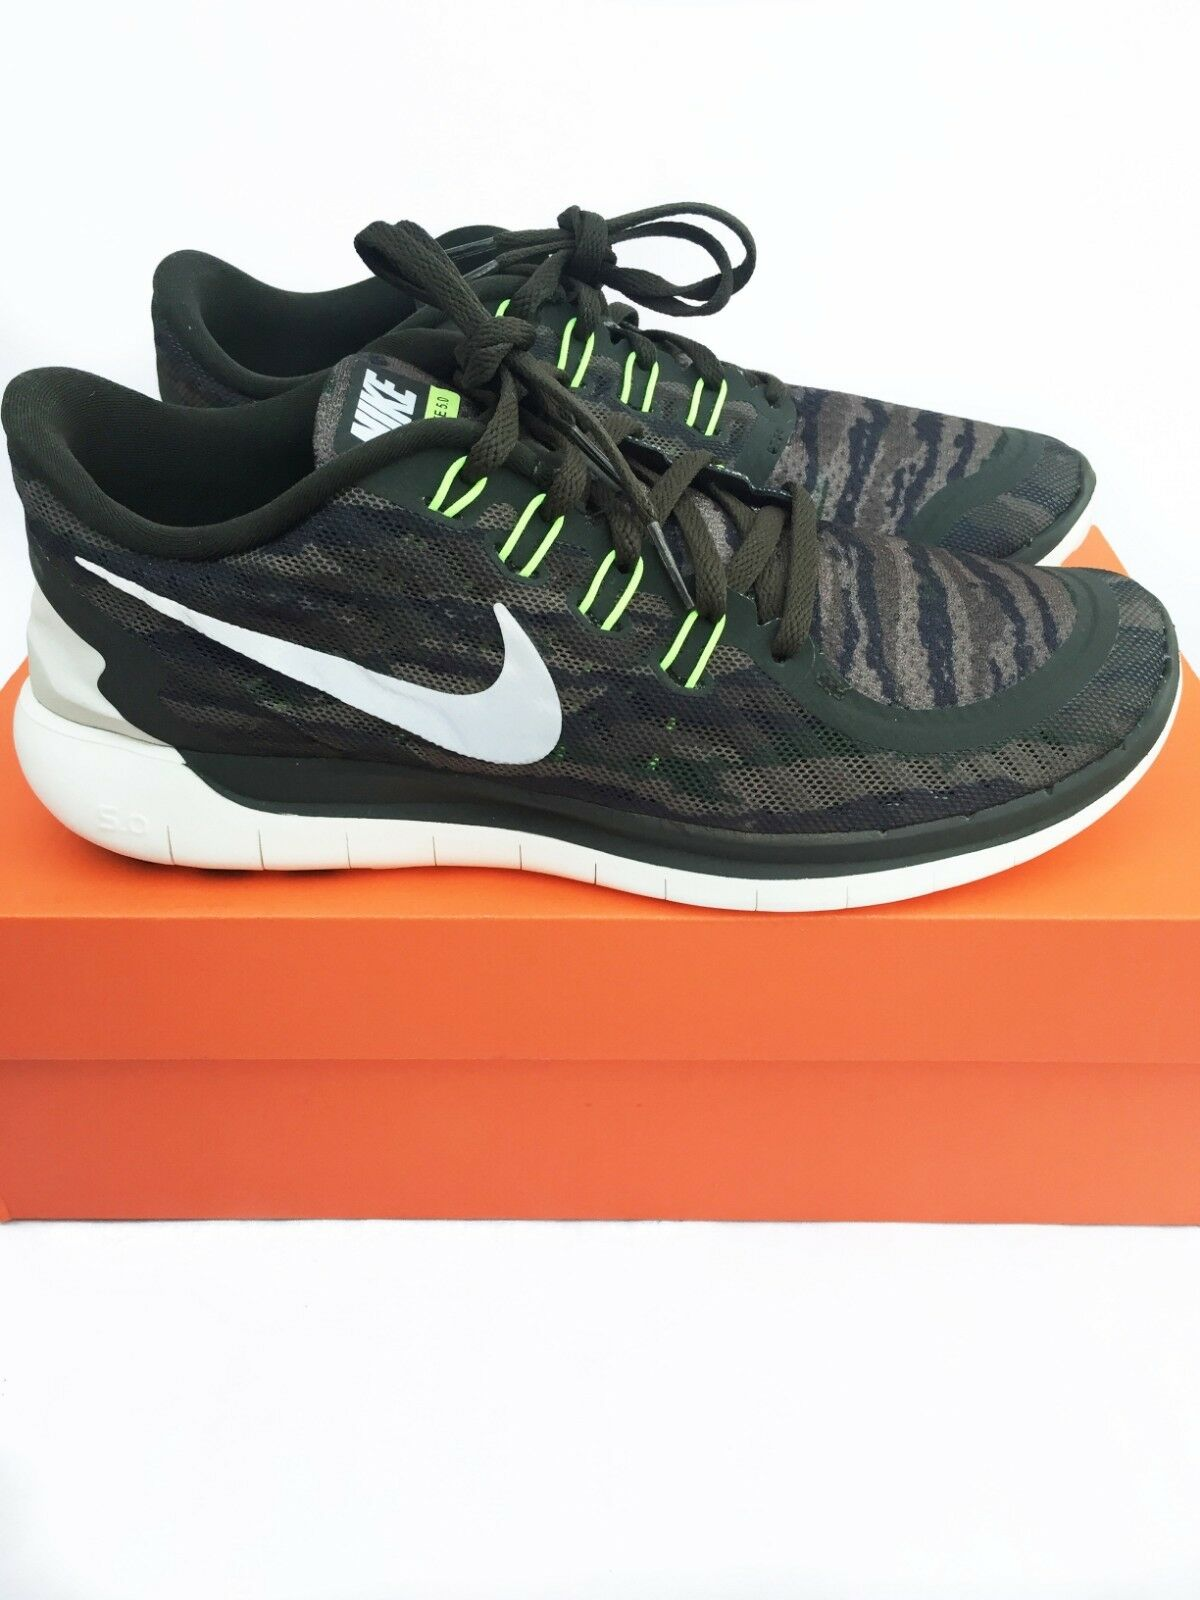 Nike Free 5.0 Print Running Training Active Low Top Shoes  Size US 8